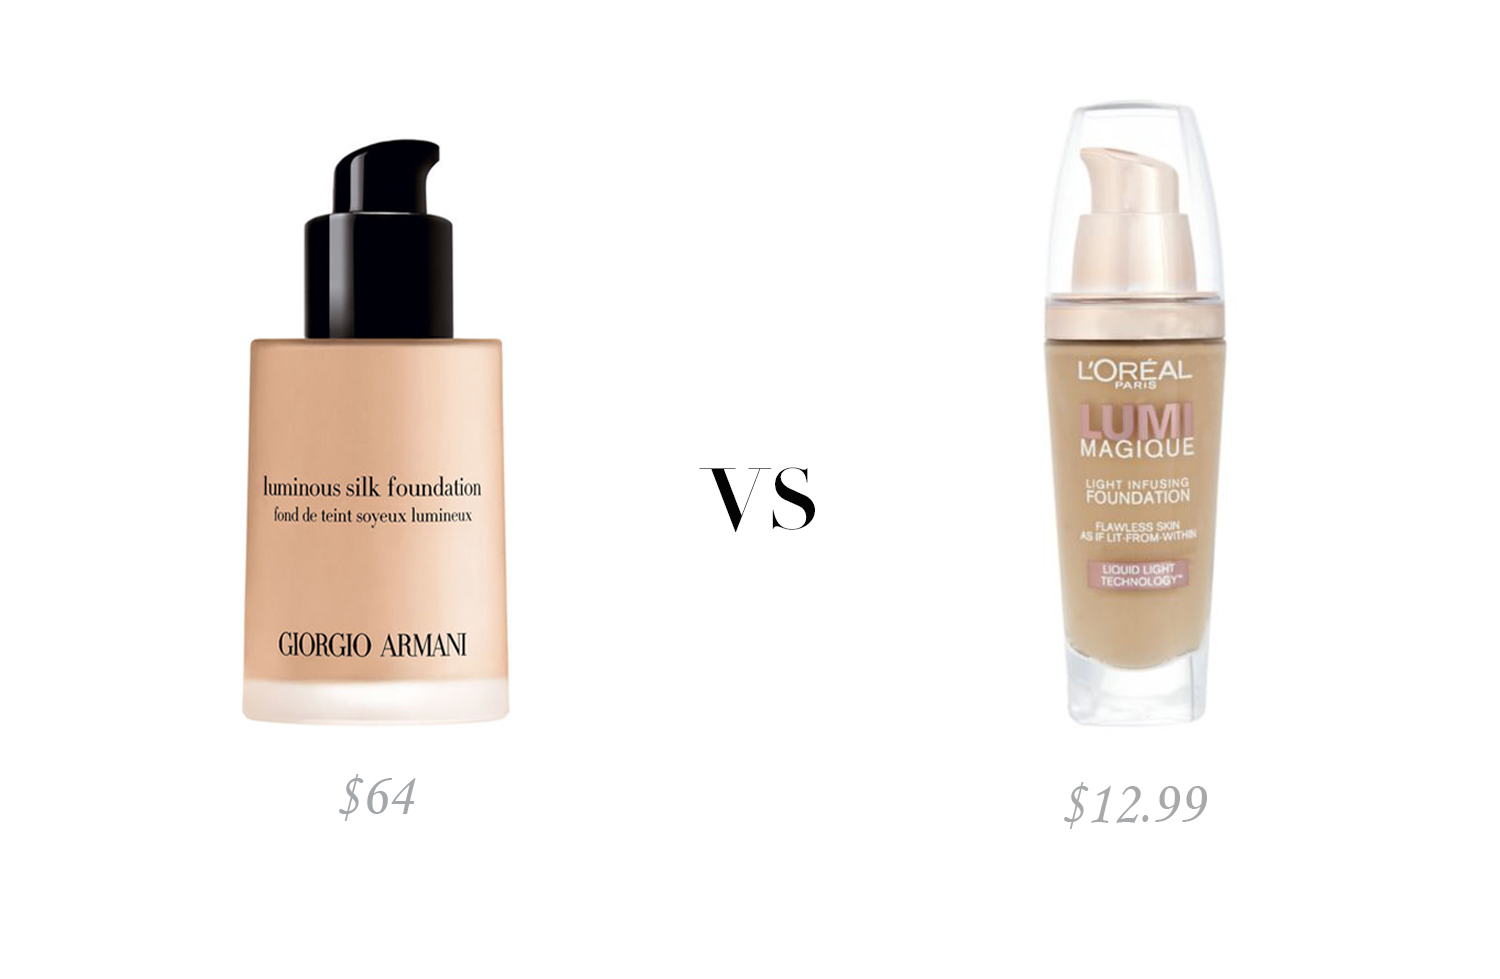 8 Drugstore Dupes For Your Favorite High End Make Up Products Jessi Malay